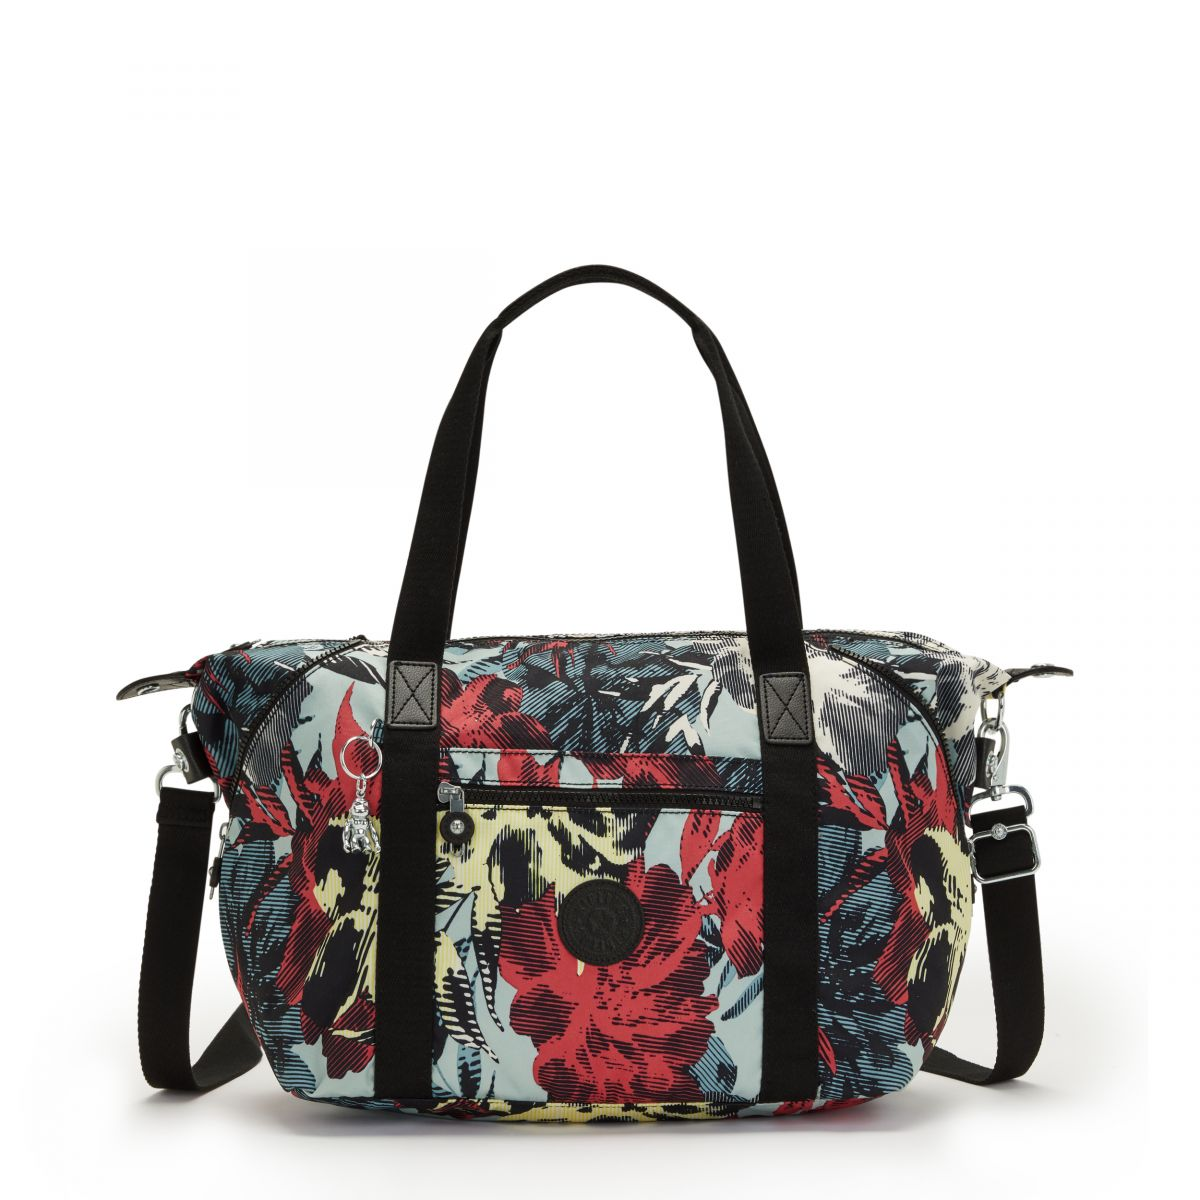 ART BAGS by Kipling - Front view